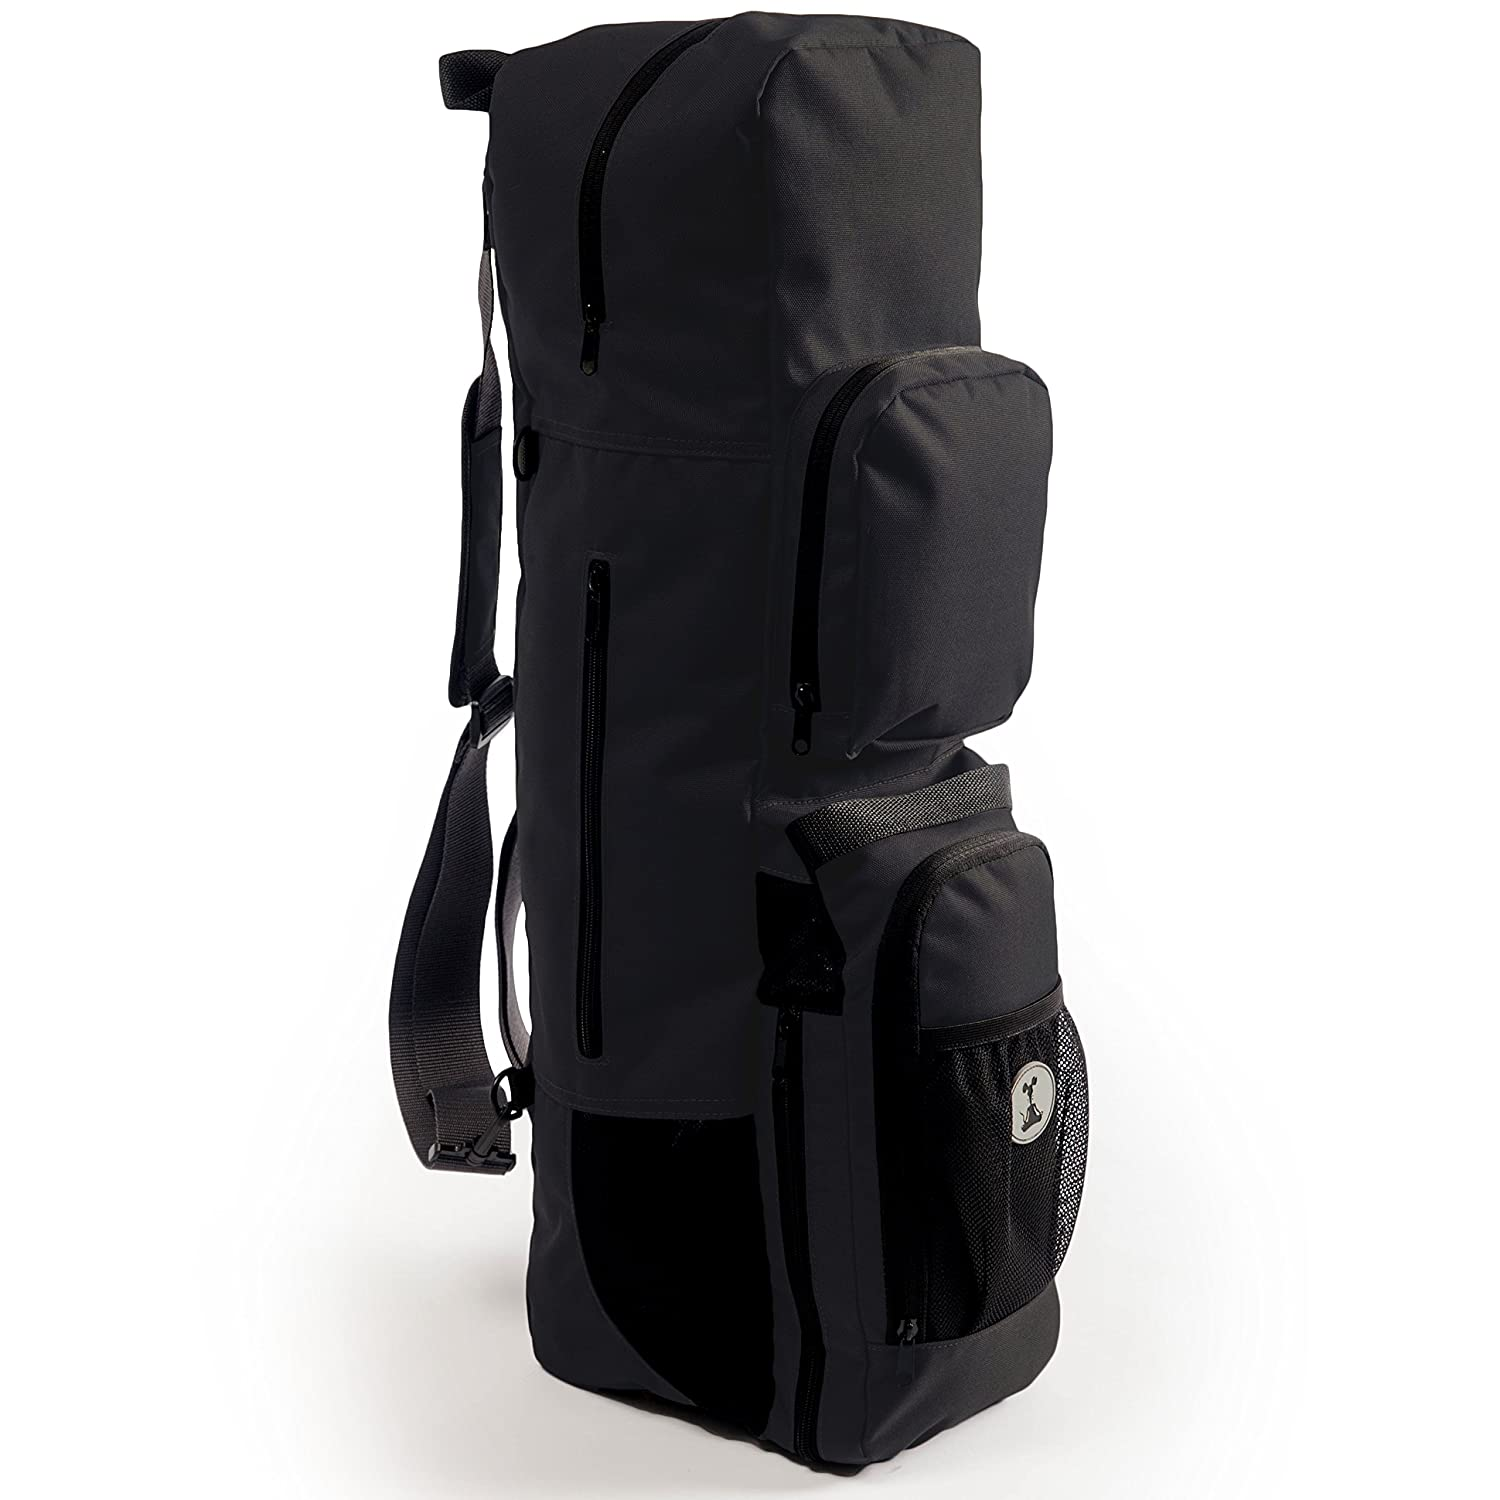 a297942cc312 Amazon.com   MatPak Yoga Bag